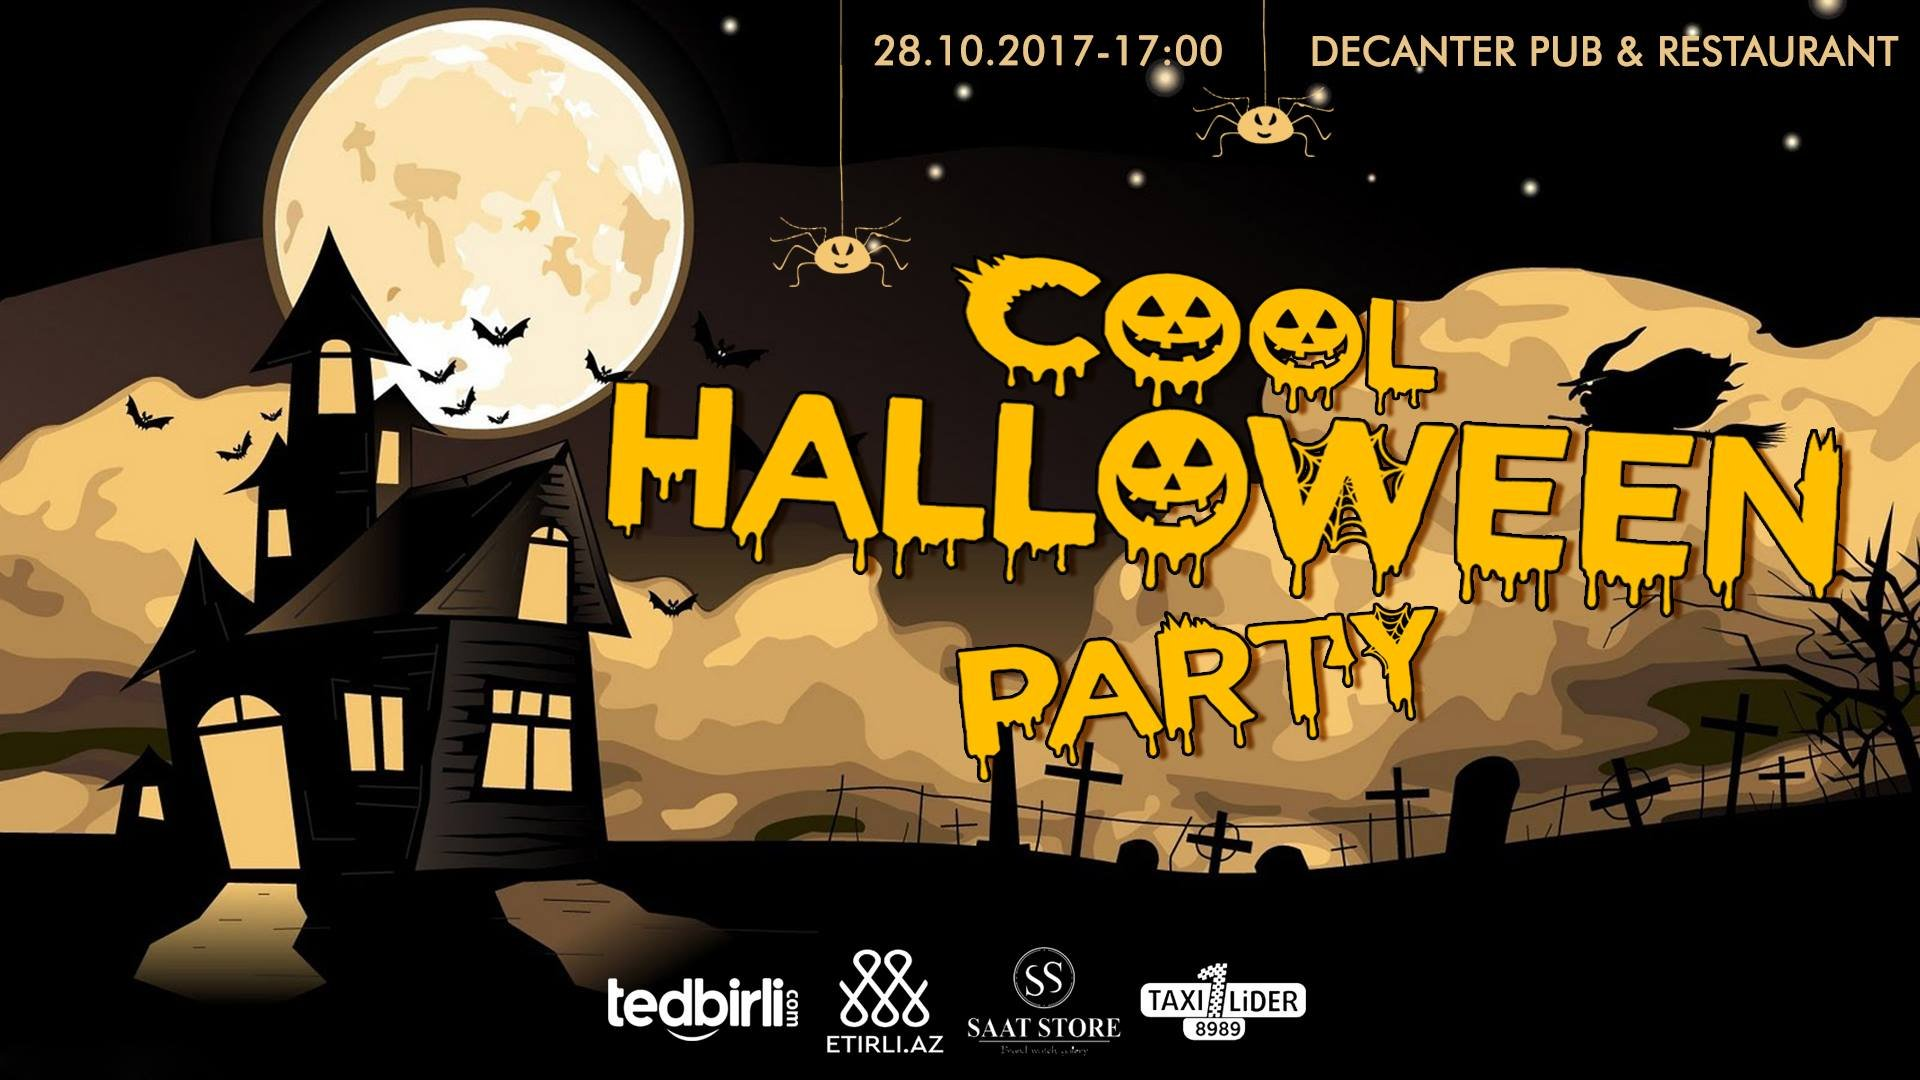 diger/tedbirli.com---dan-cool-halloween-party